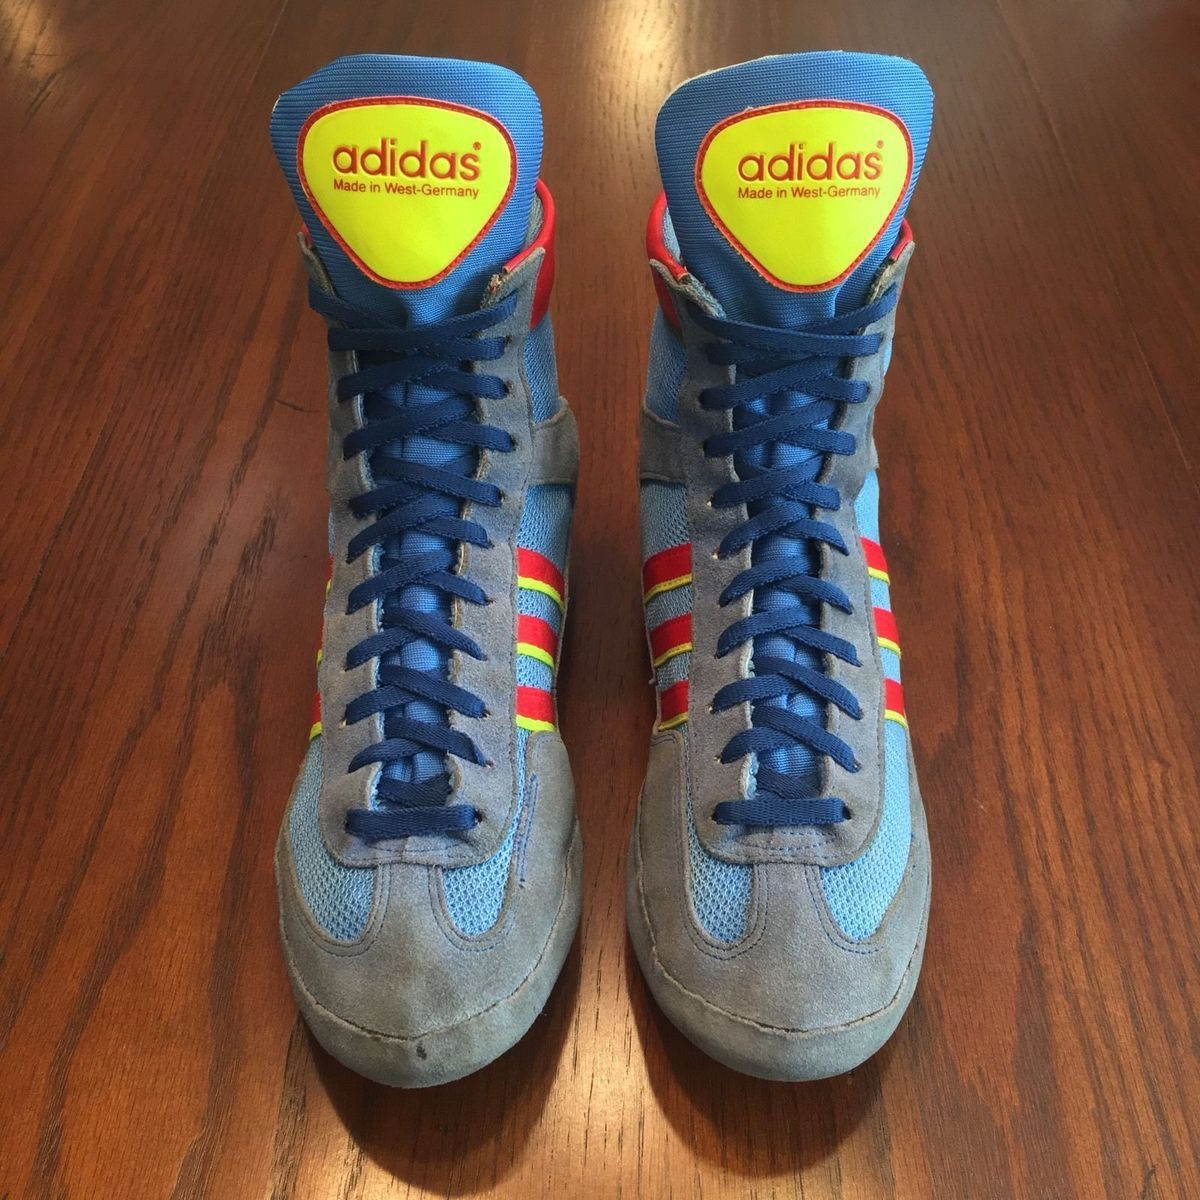 Pin by Bob Riegel on Shoes Wrestling shoes, Shoes, Wrestling